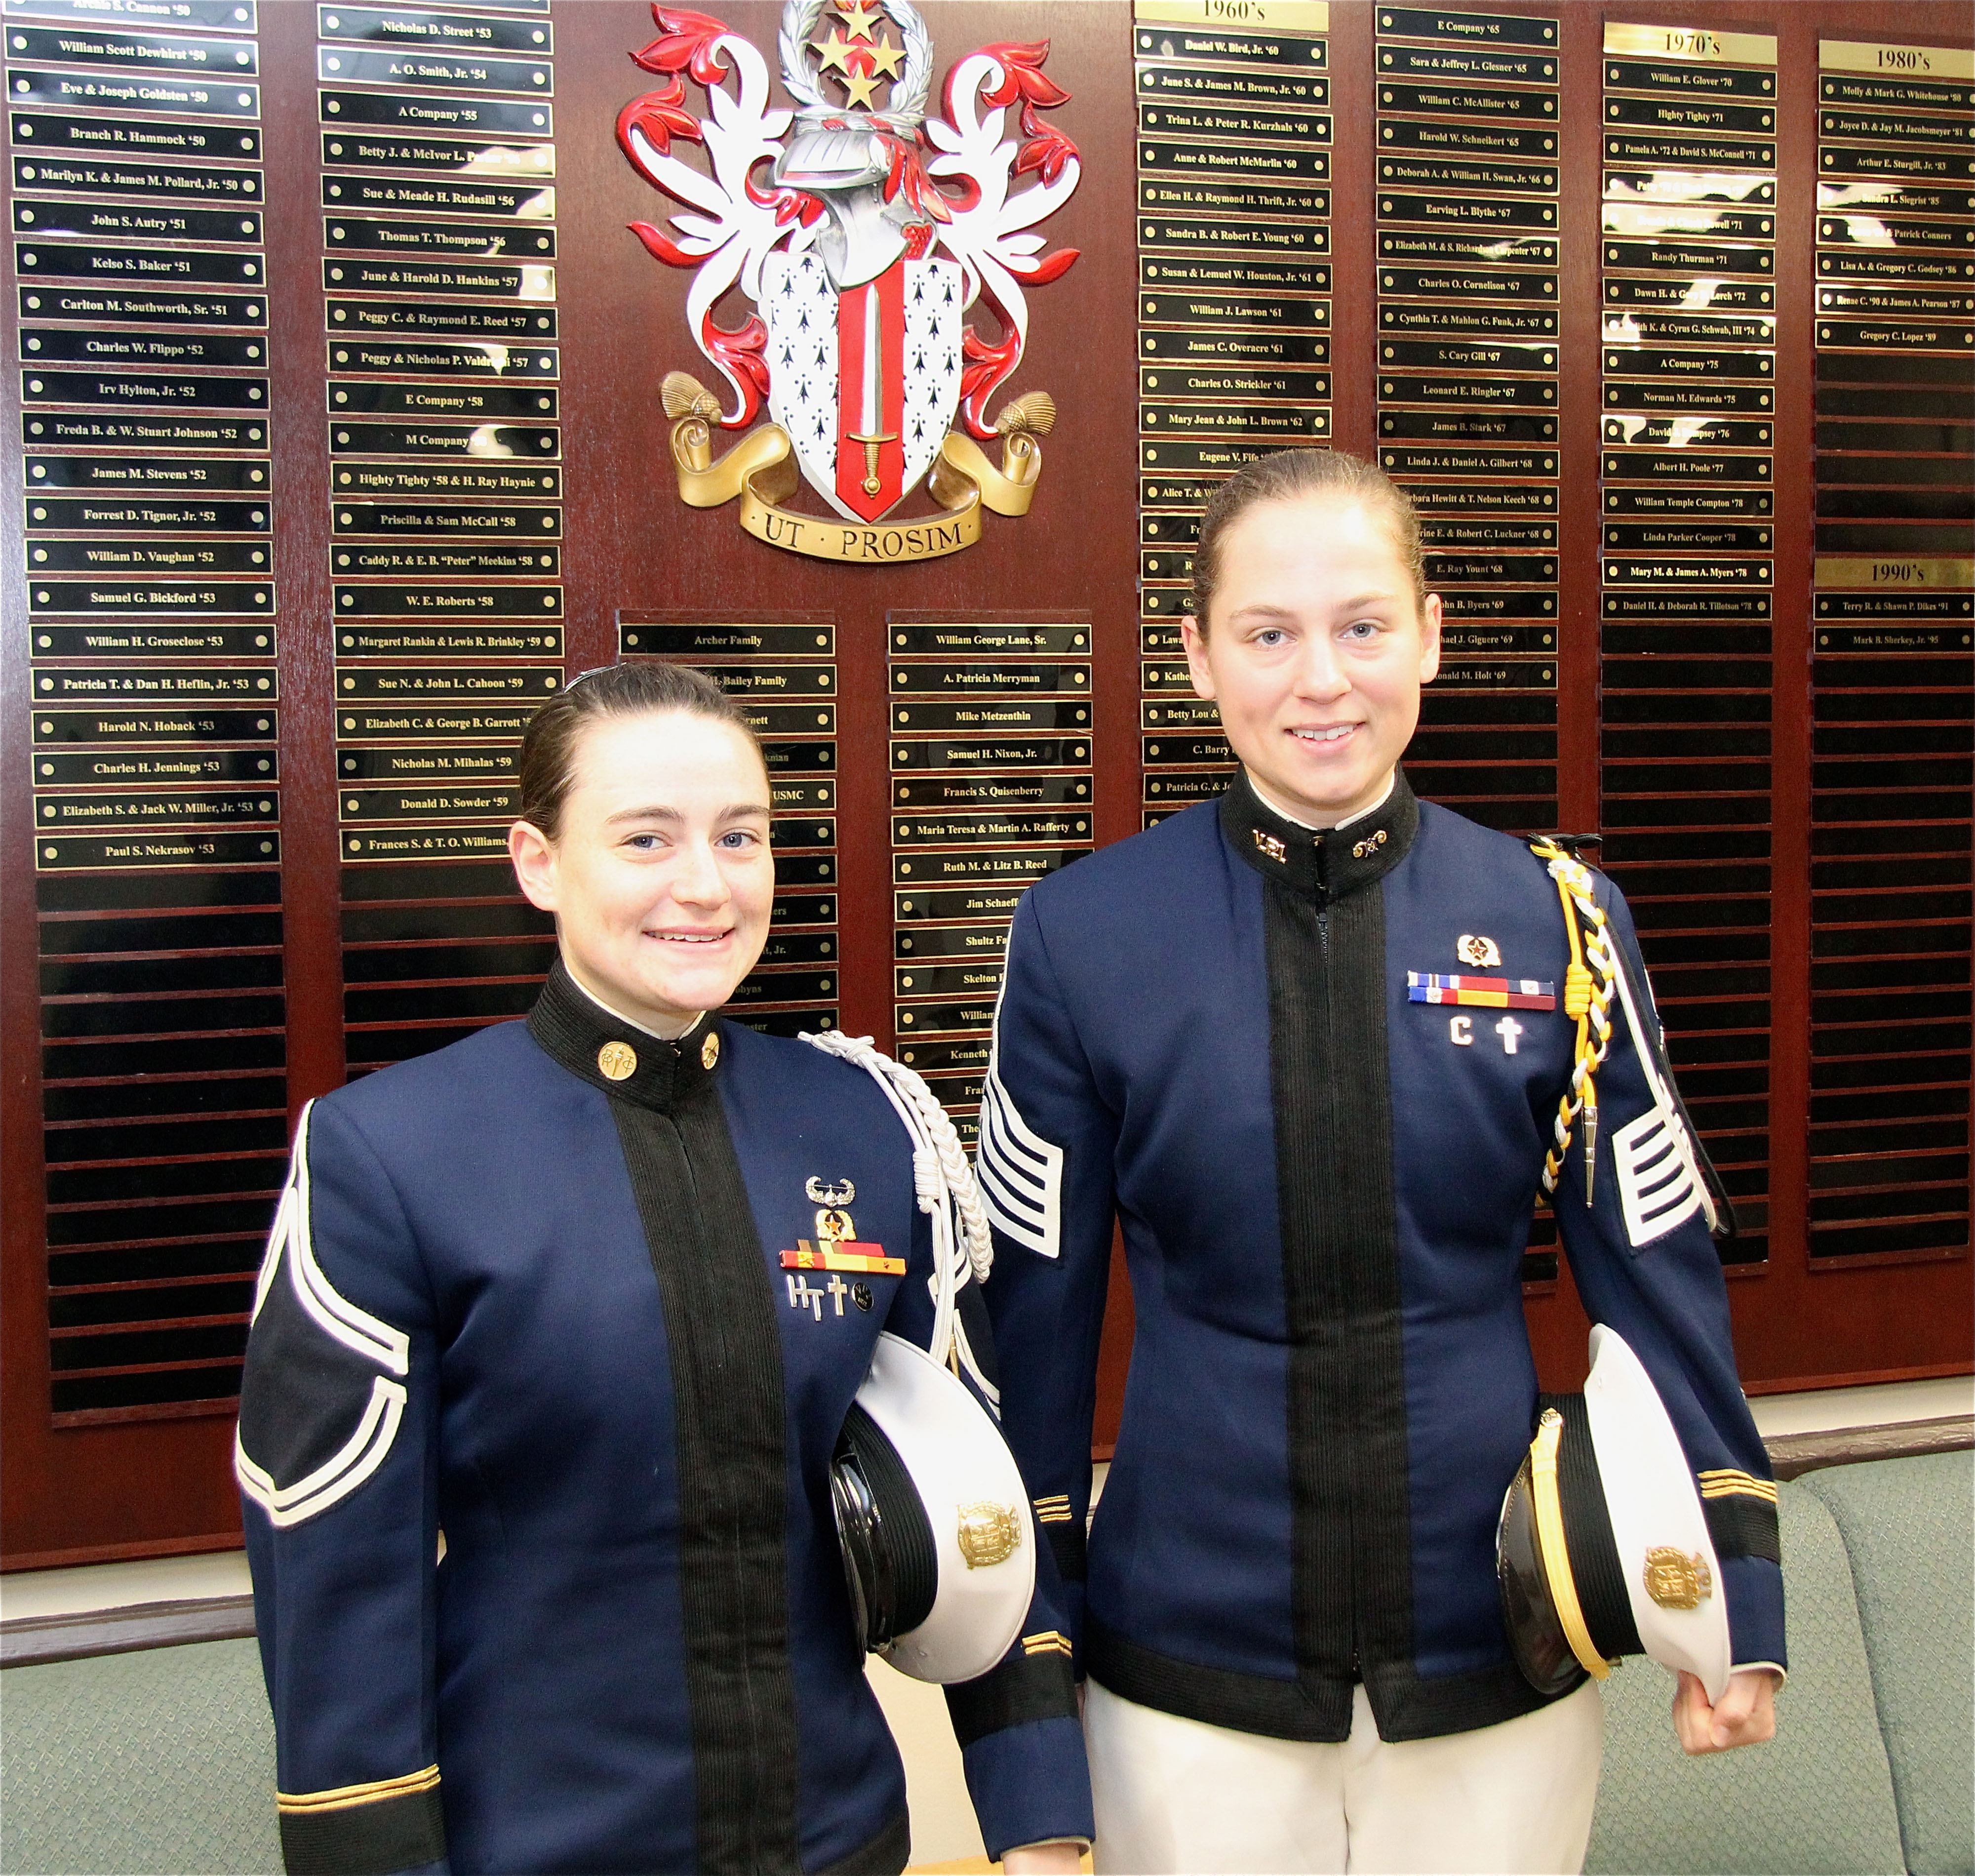 From left to right are Cadets Elaine Altman and Faith Mueller in front of the Corps of Cadets Donor Wall